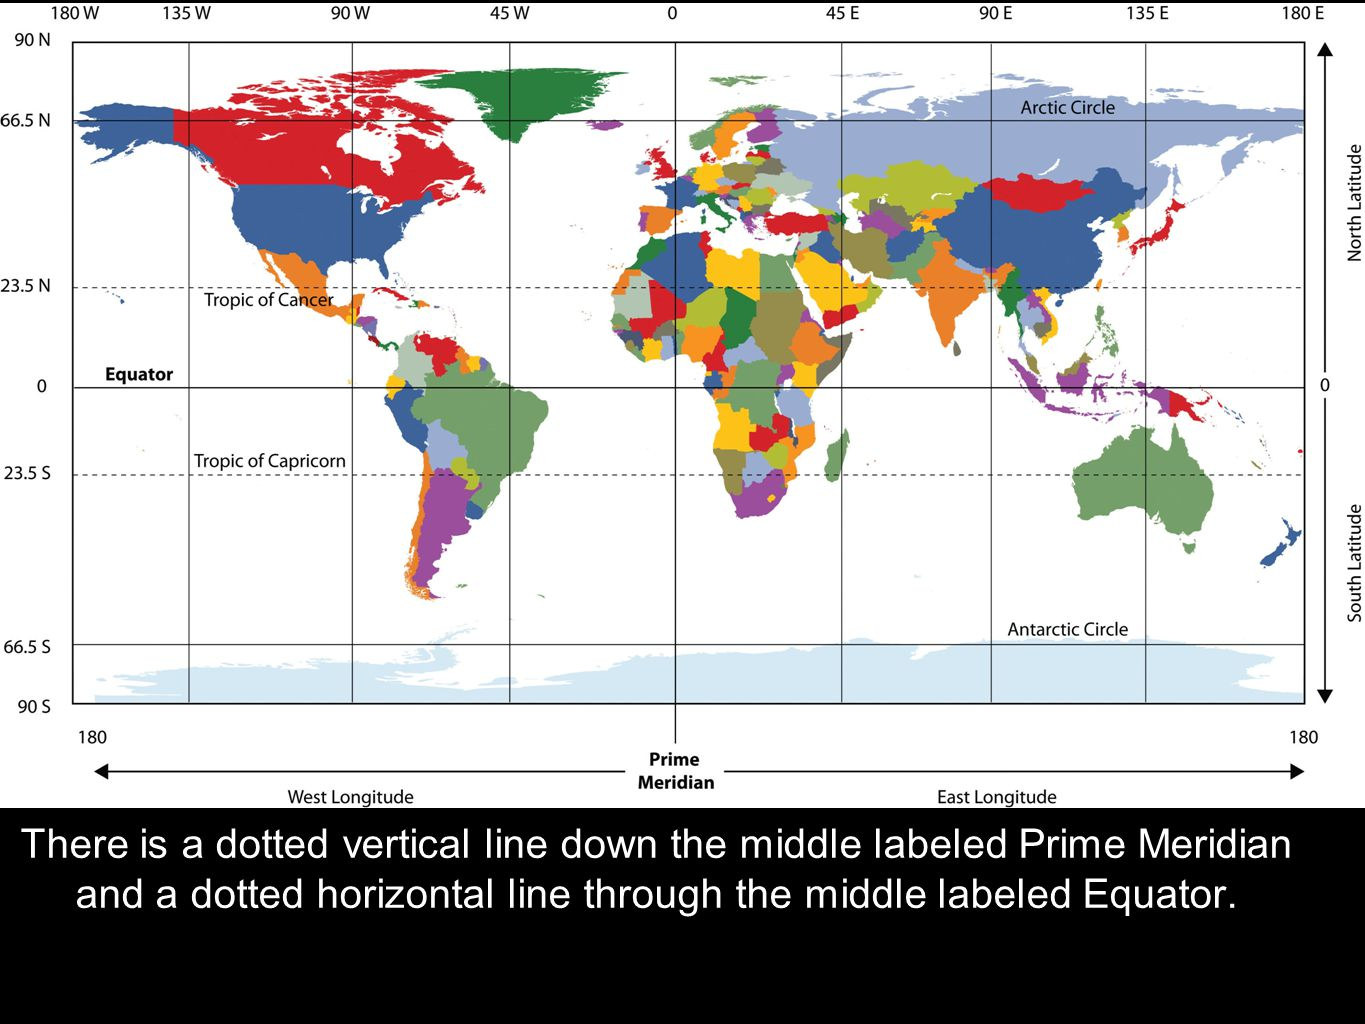 It There is a dotted vertical line down the middle labeled Prime Meridian and a dotted horizontal line through the middle labeled Equator.